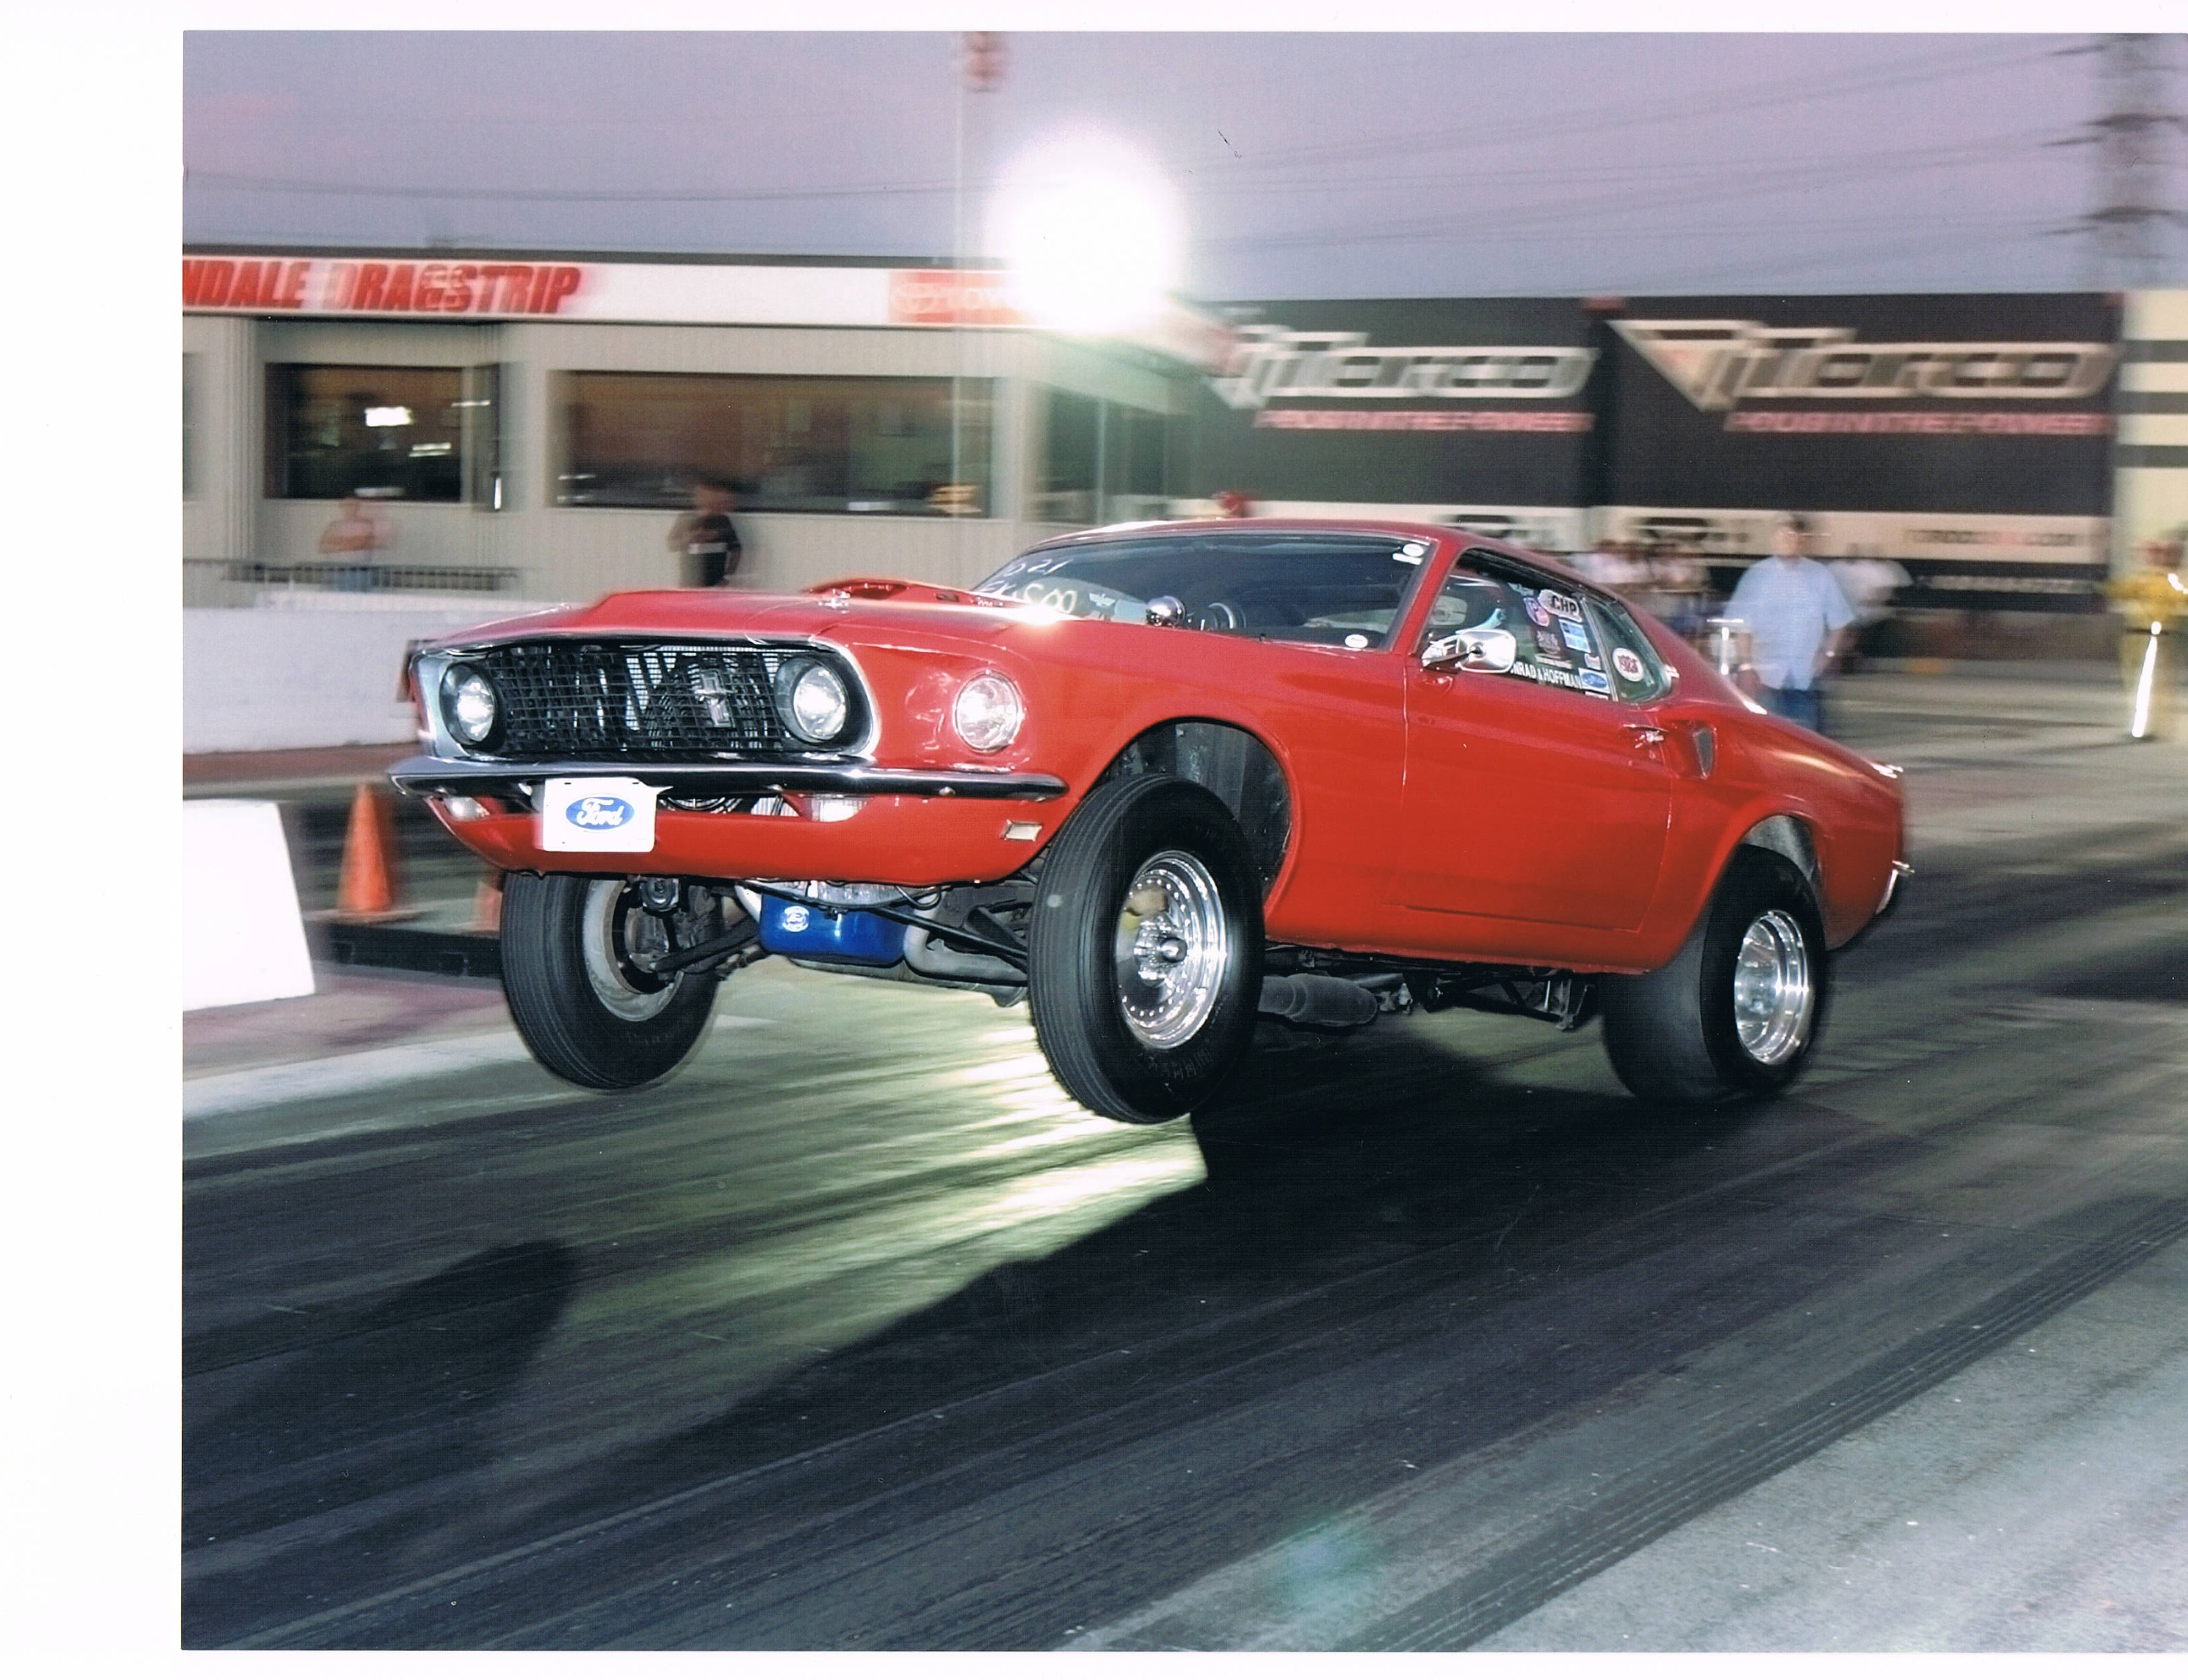 Drag racing full roller front suspension later 60s mustang falcon comet fairlane cougar maverick opentracker racing products